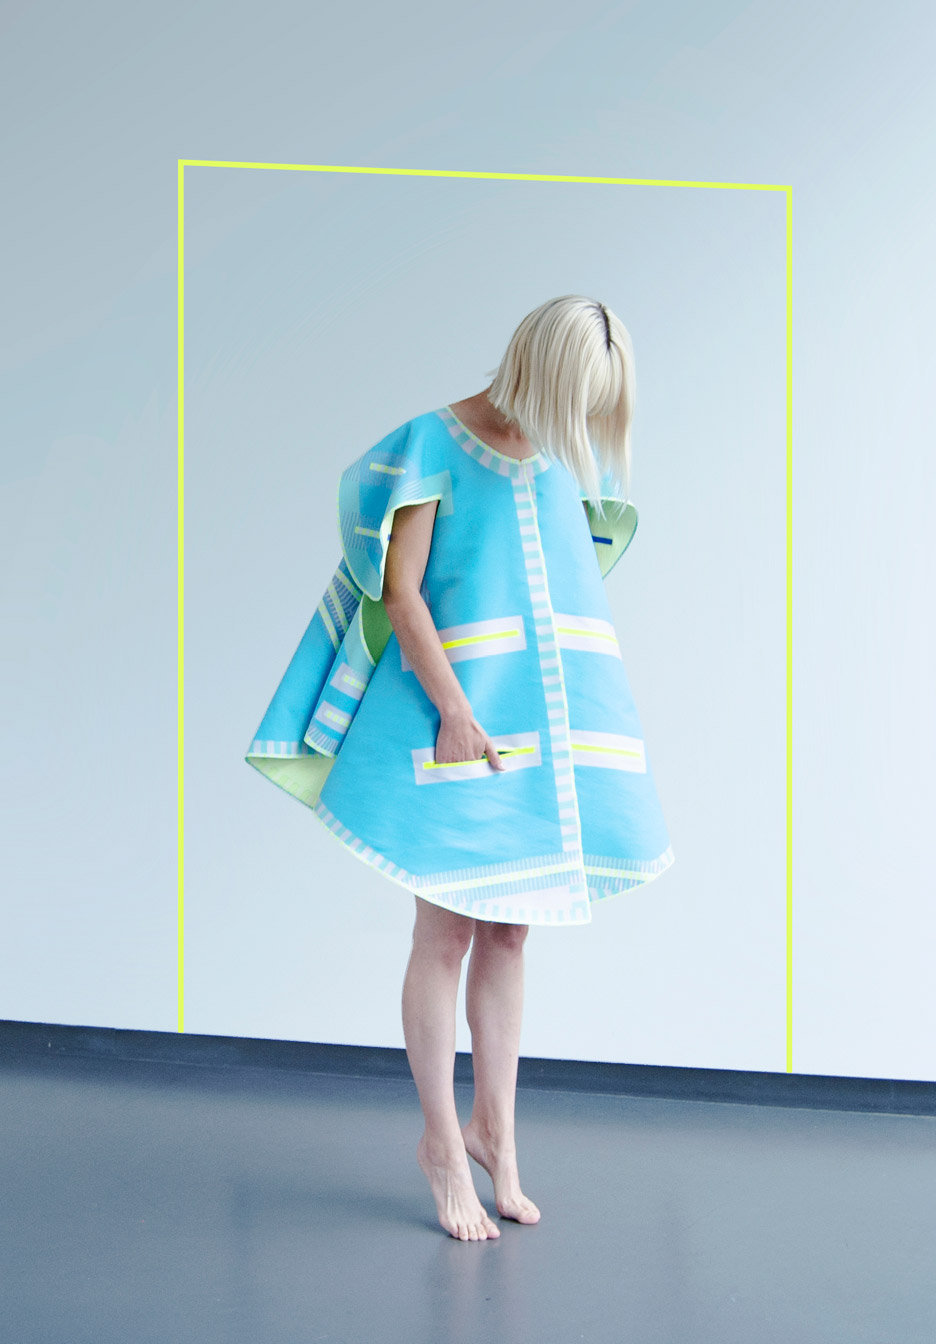 Vera-de-Pont_Pop-Up_fashion-collection_graduation_fashion-designer_Dutch-Design-Week-2015_dezeen_936_7